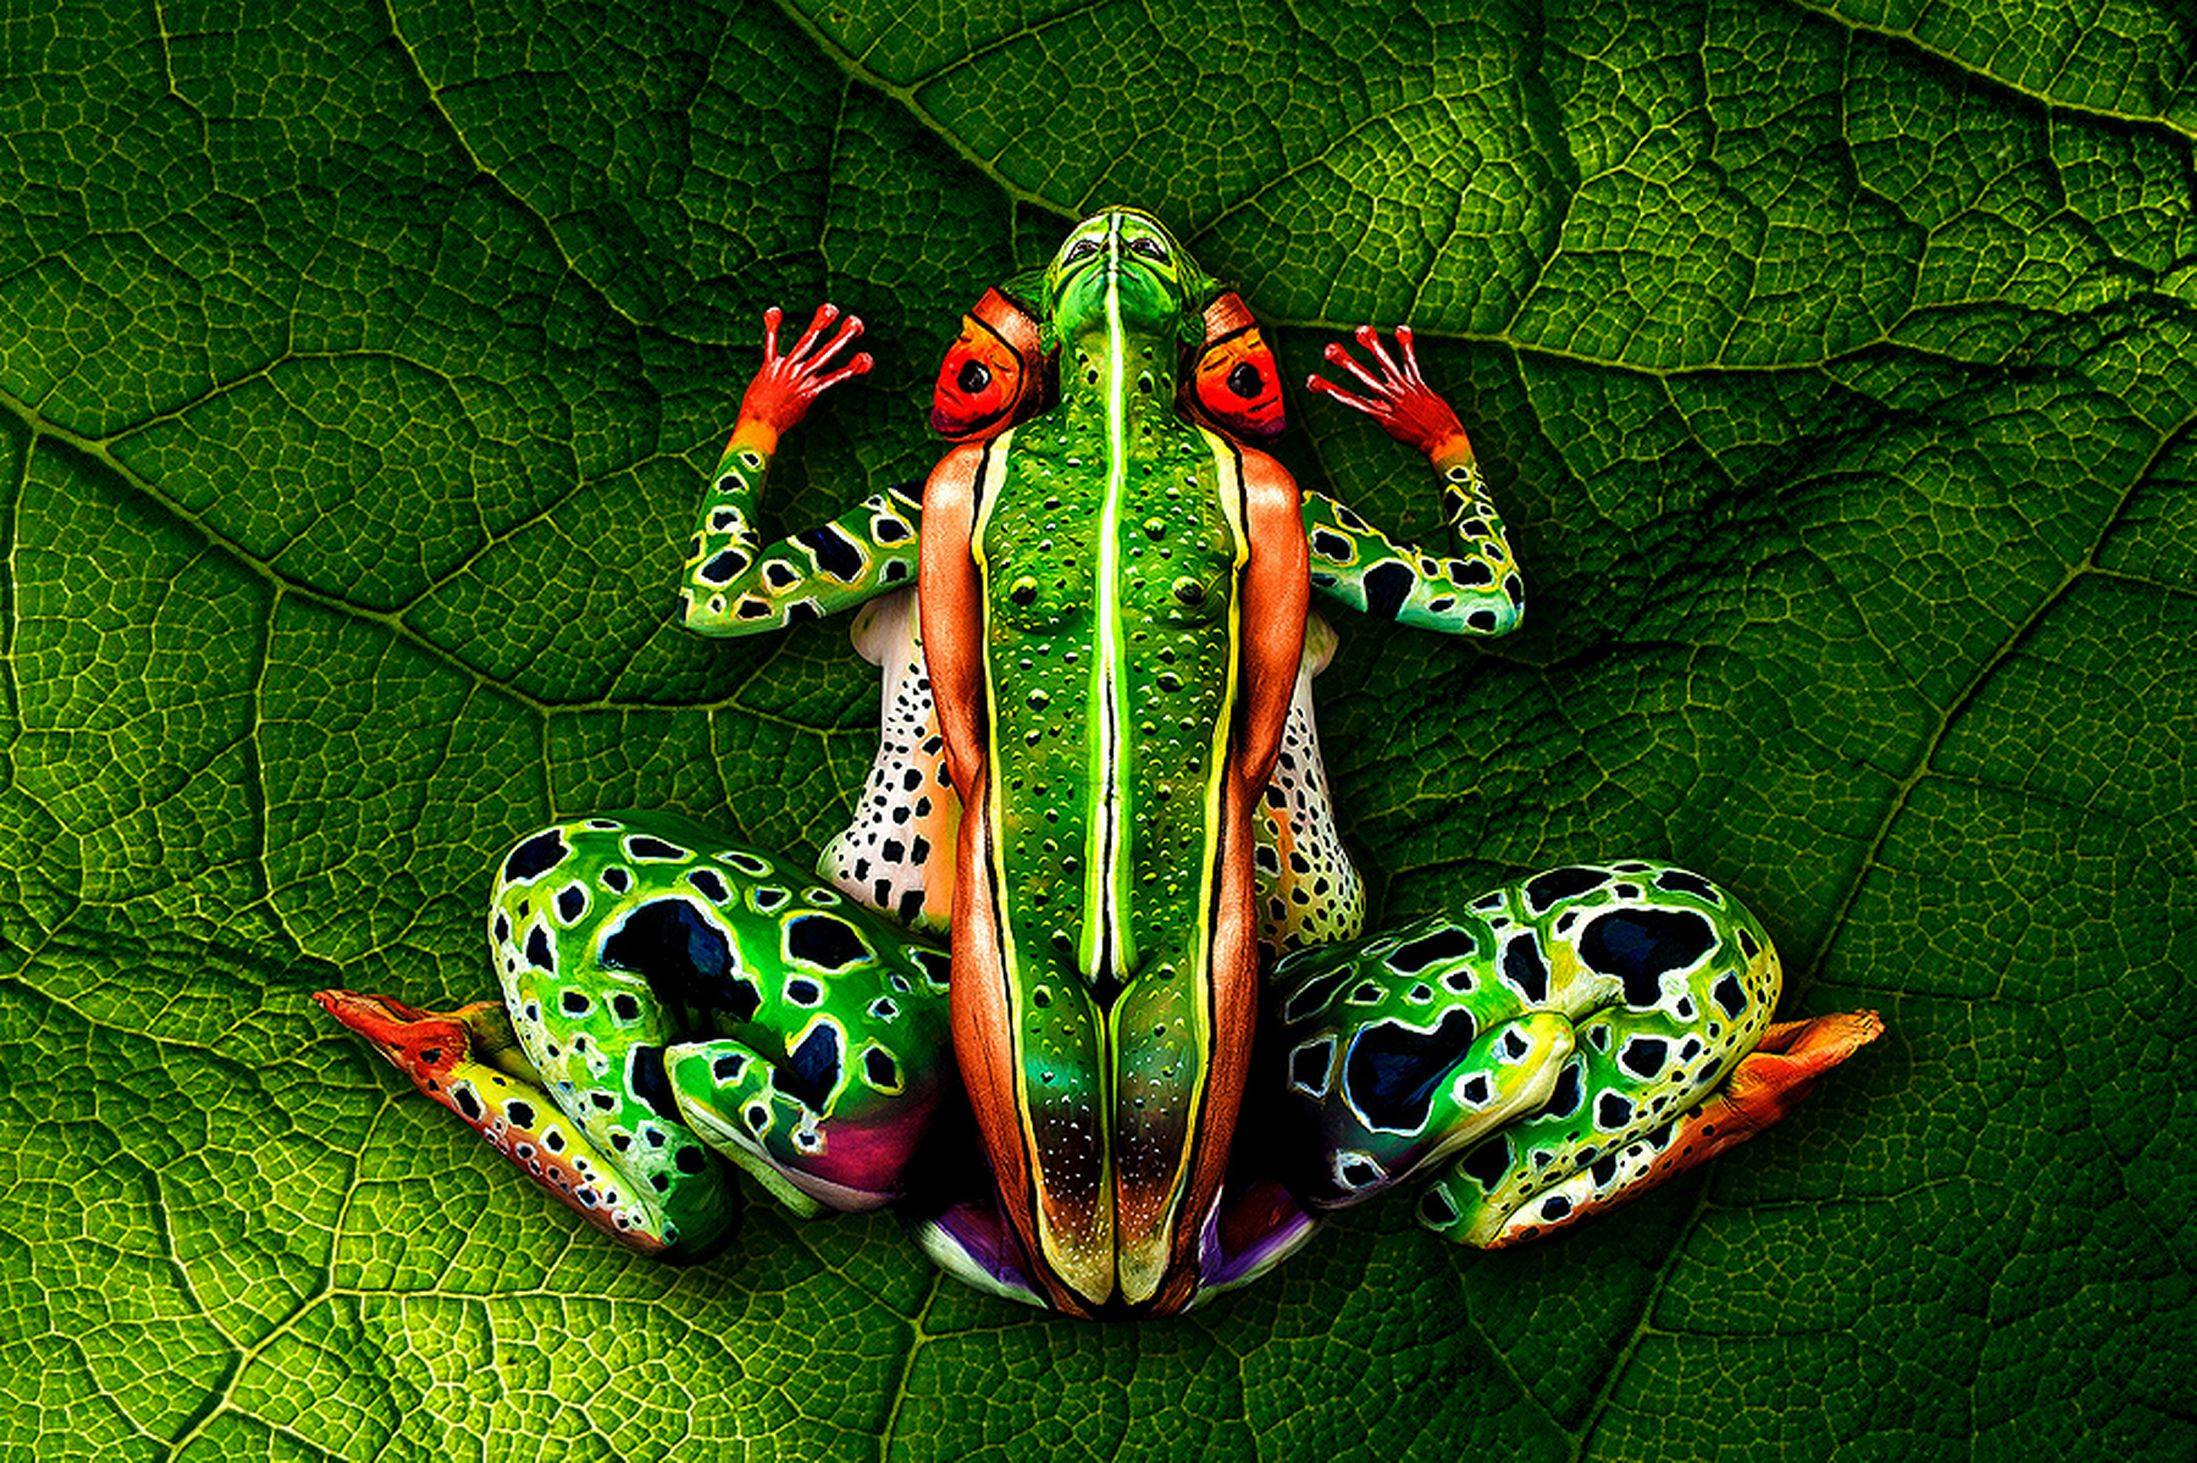 """The Frog"", A Bodypainting Masterpiece by Johannes Stötter"